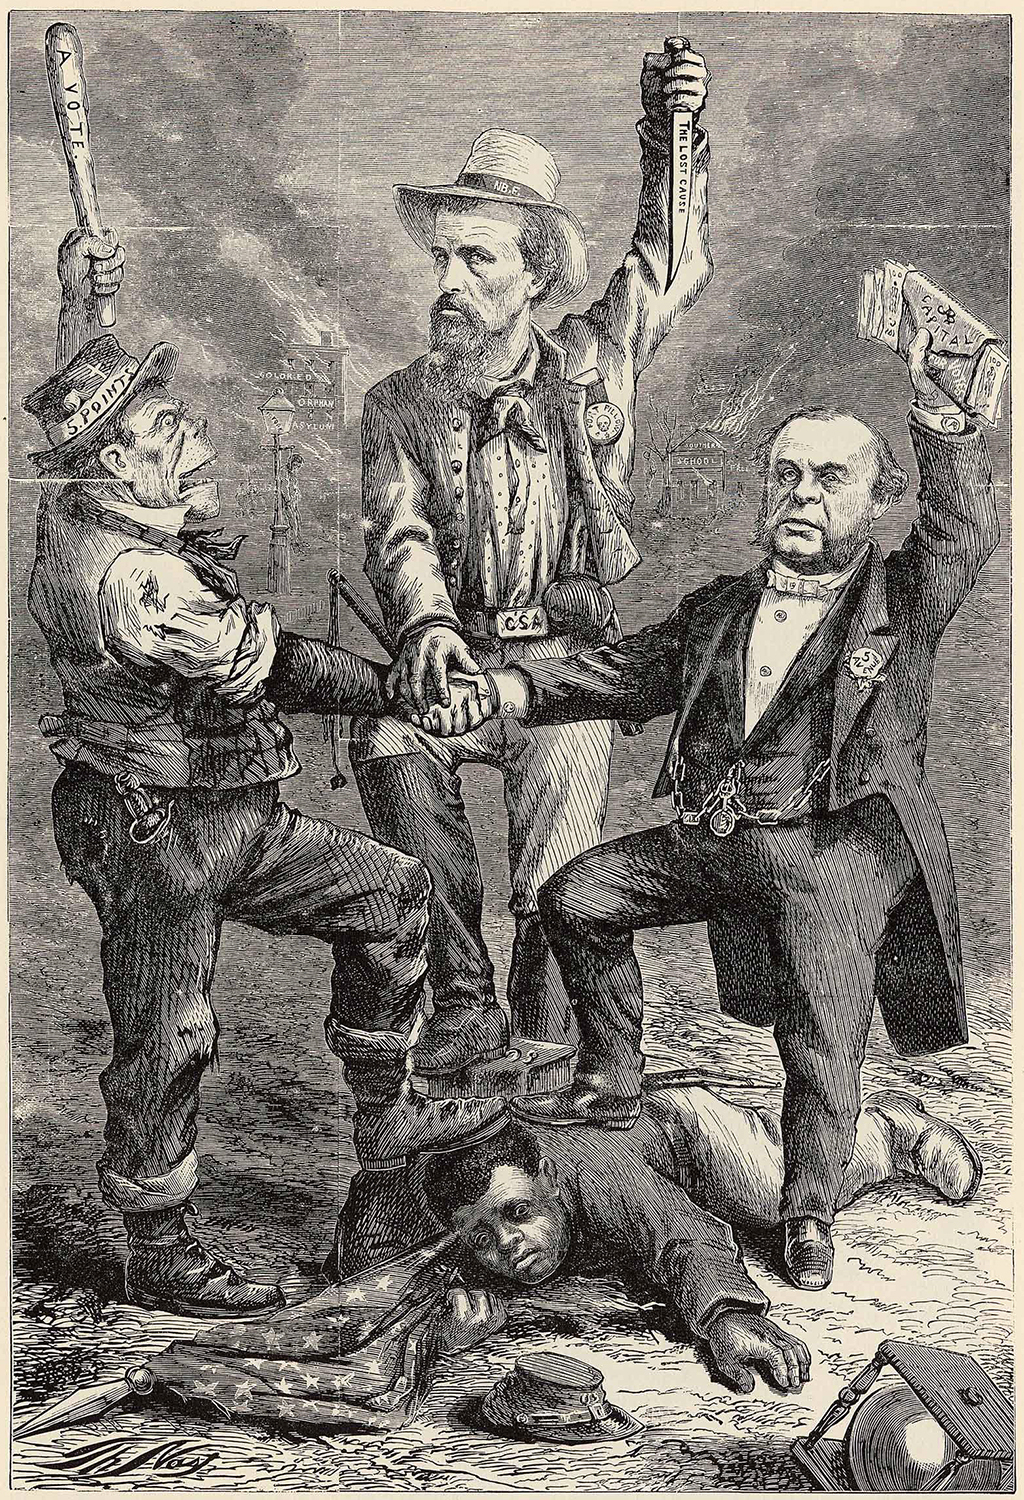 Thomas Nast Cartoon, The Camilla Massacre, 1868